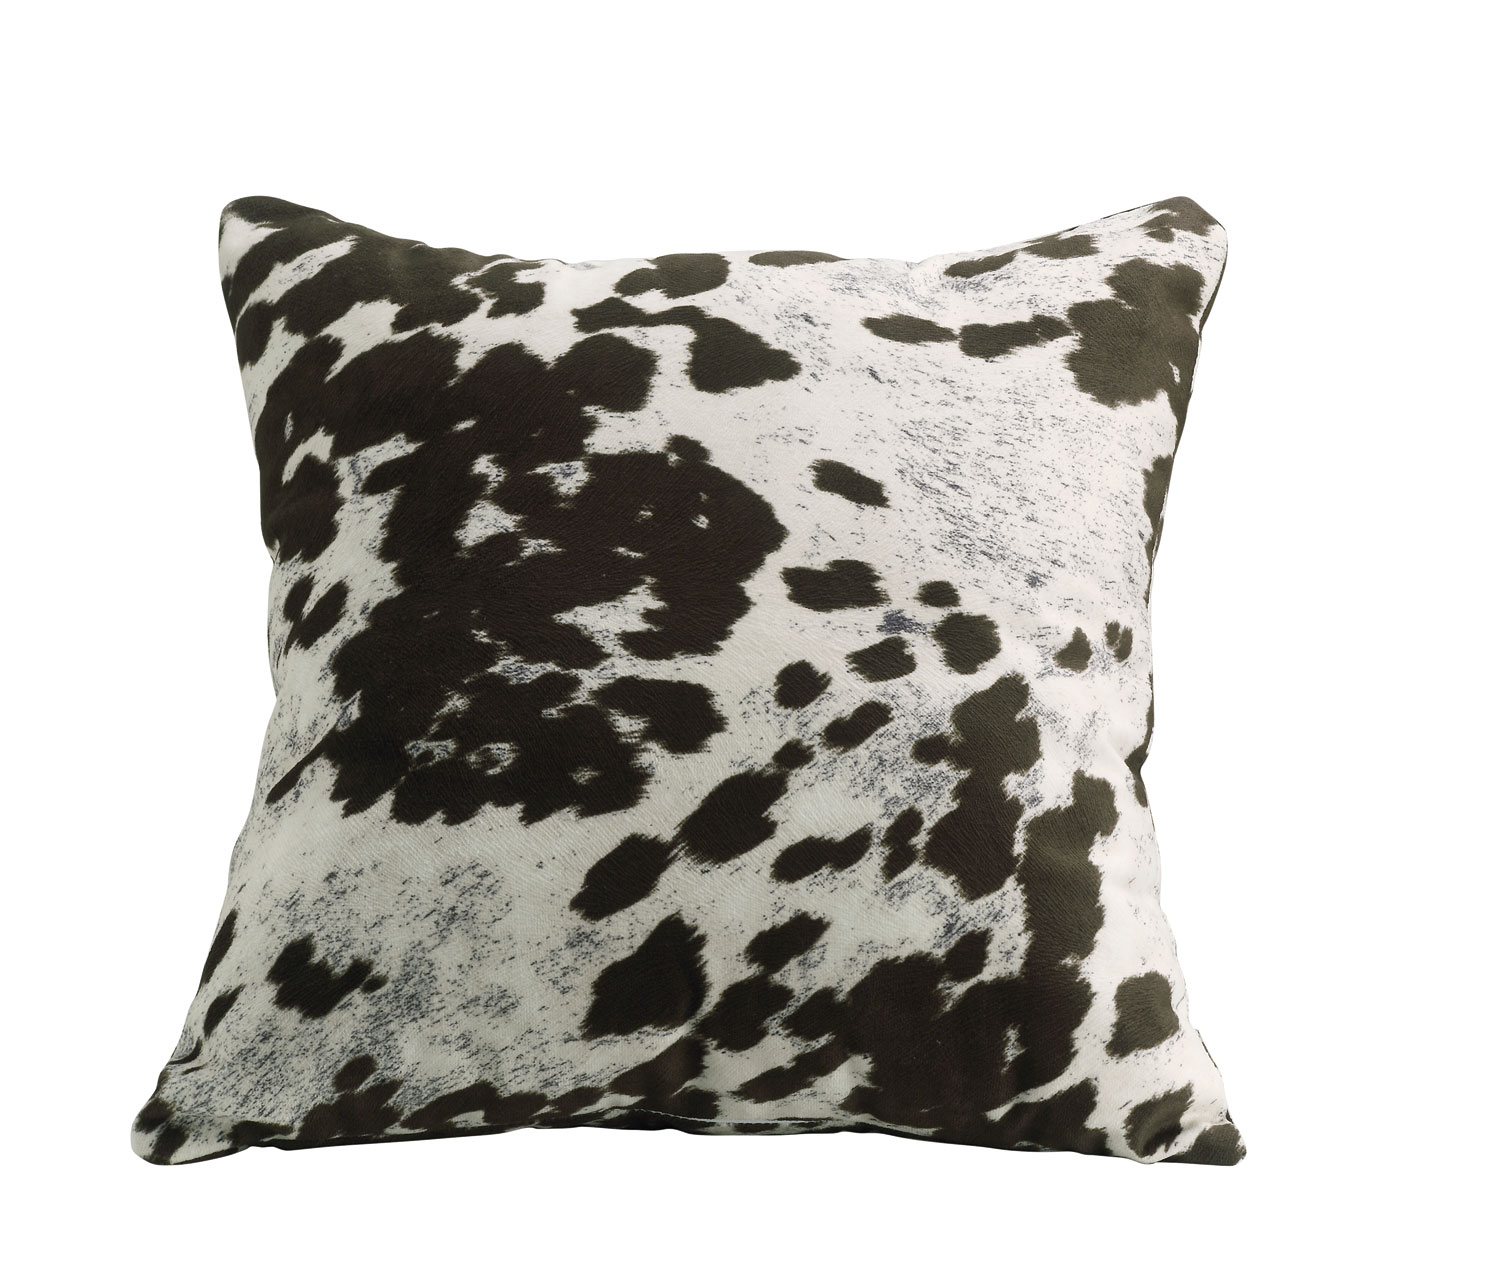 Coaster Throw Pillows Pillow - Item Number: 905068